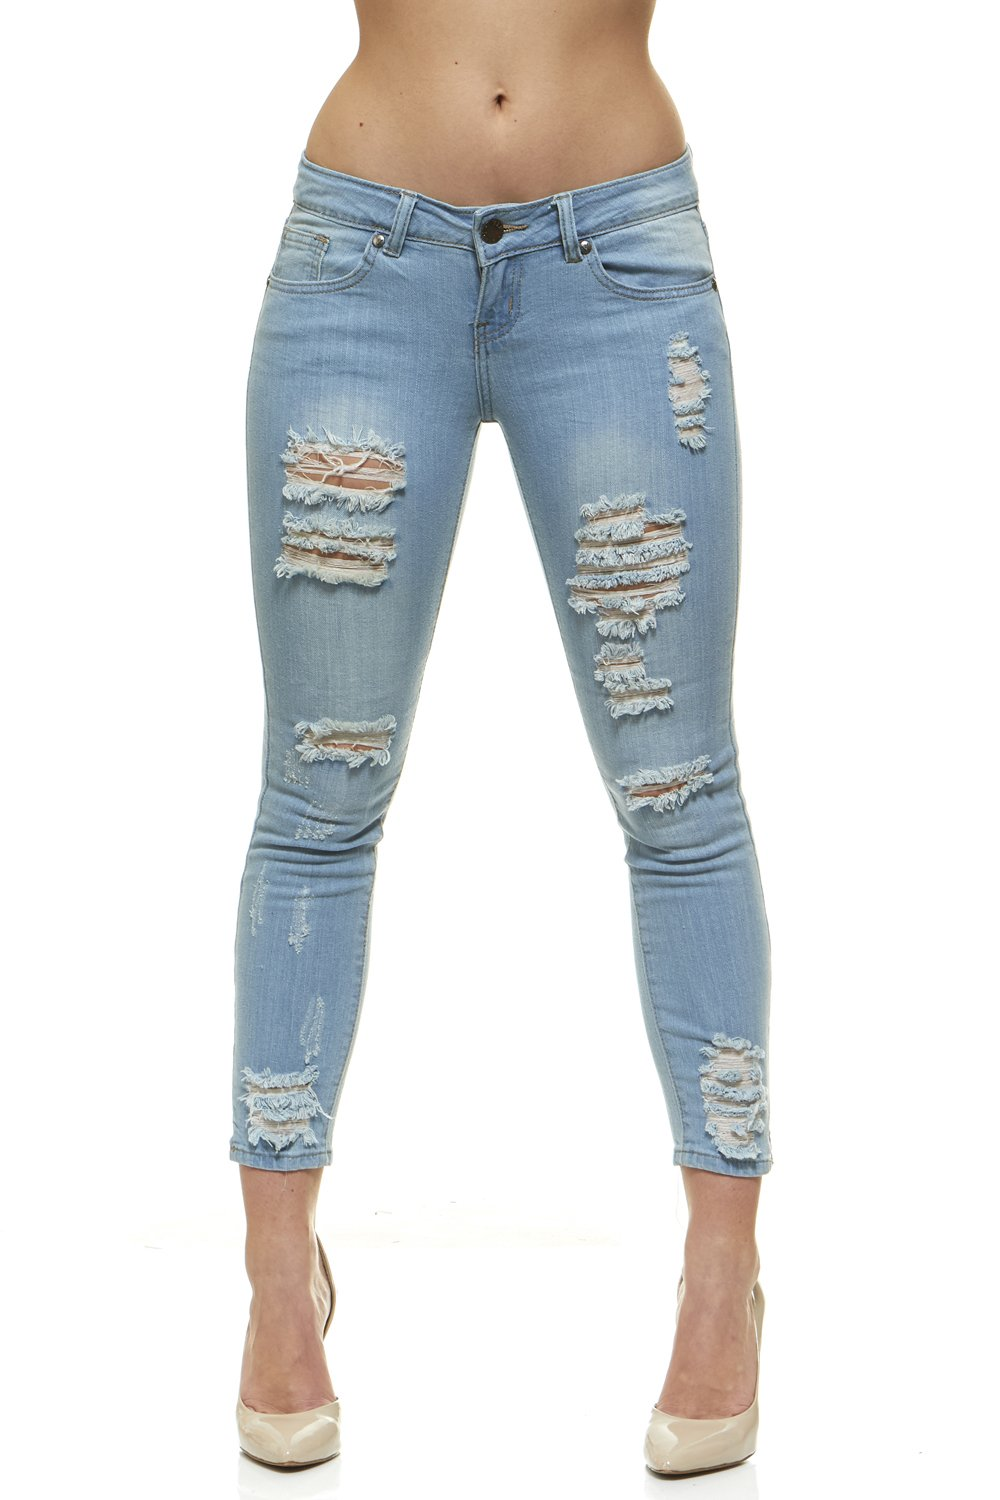 Ripped Slits Distressed Ankle Skinny Slim Fit Stretch Jeans for Women Size 3 / Light Blue Denim